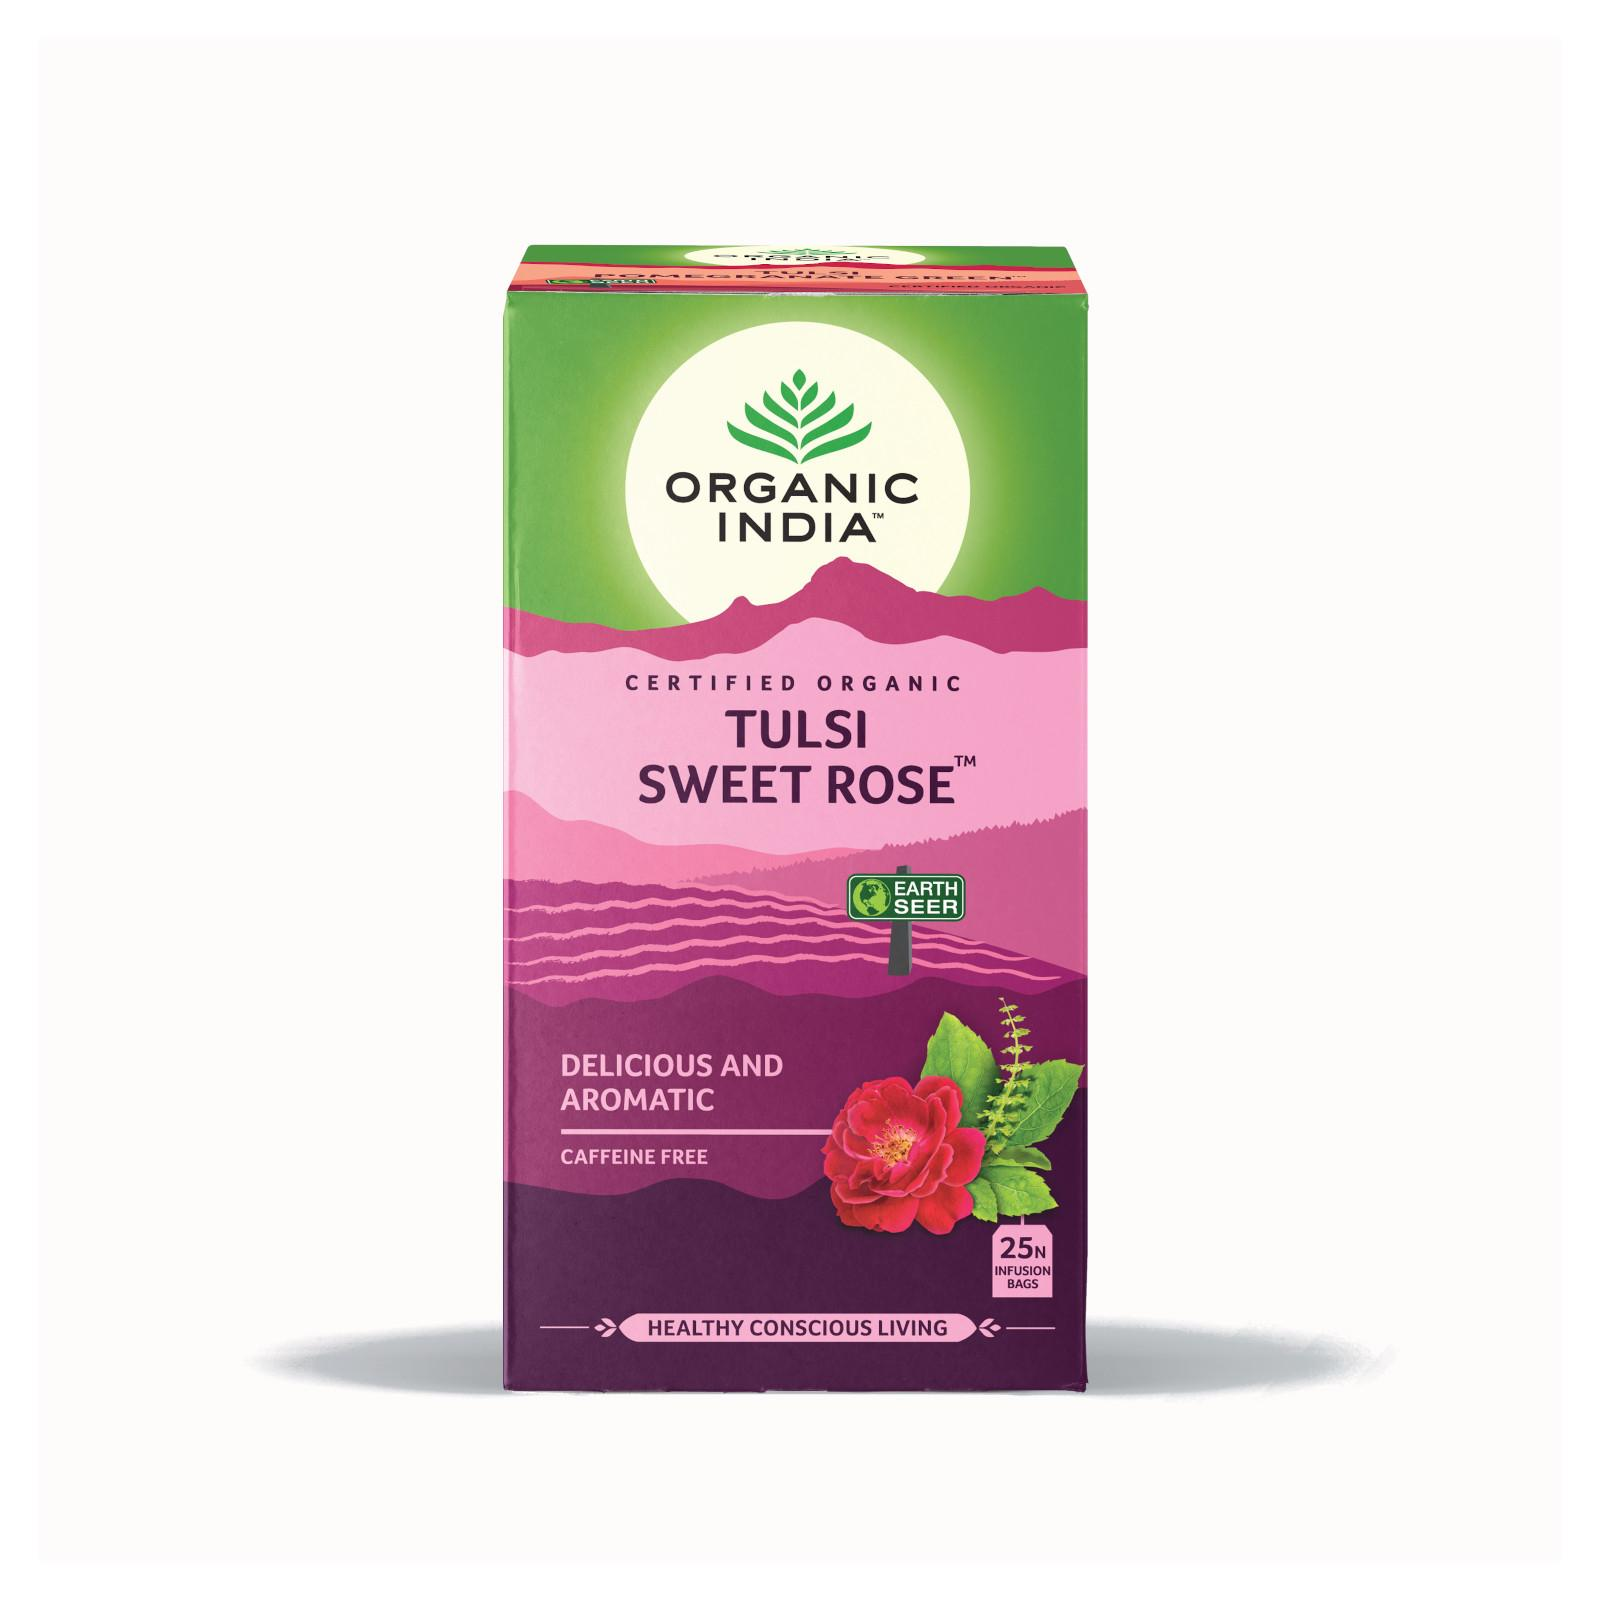 Organic India Čaj Tulsi Sweet Rose, porcovaný 18 ks, 28,8 g